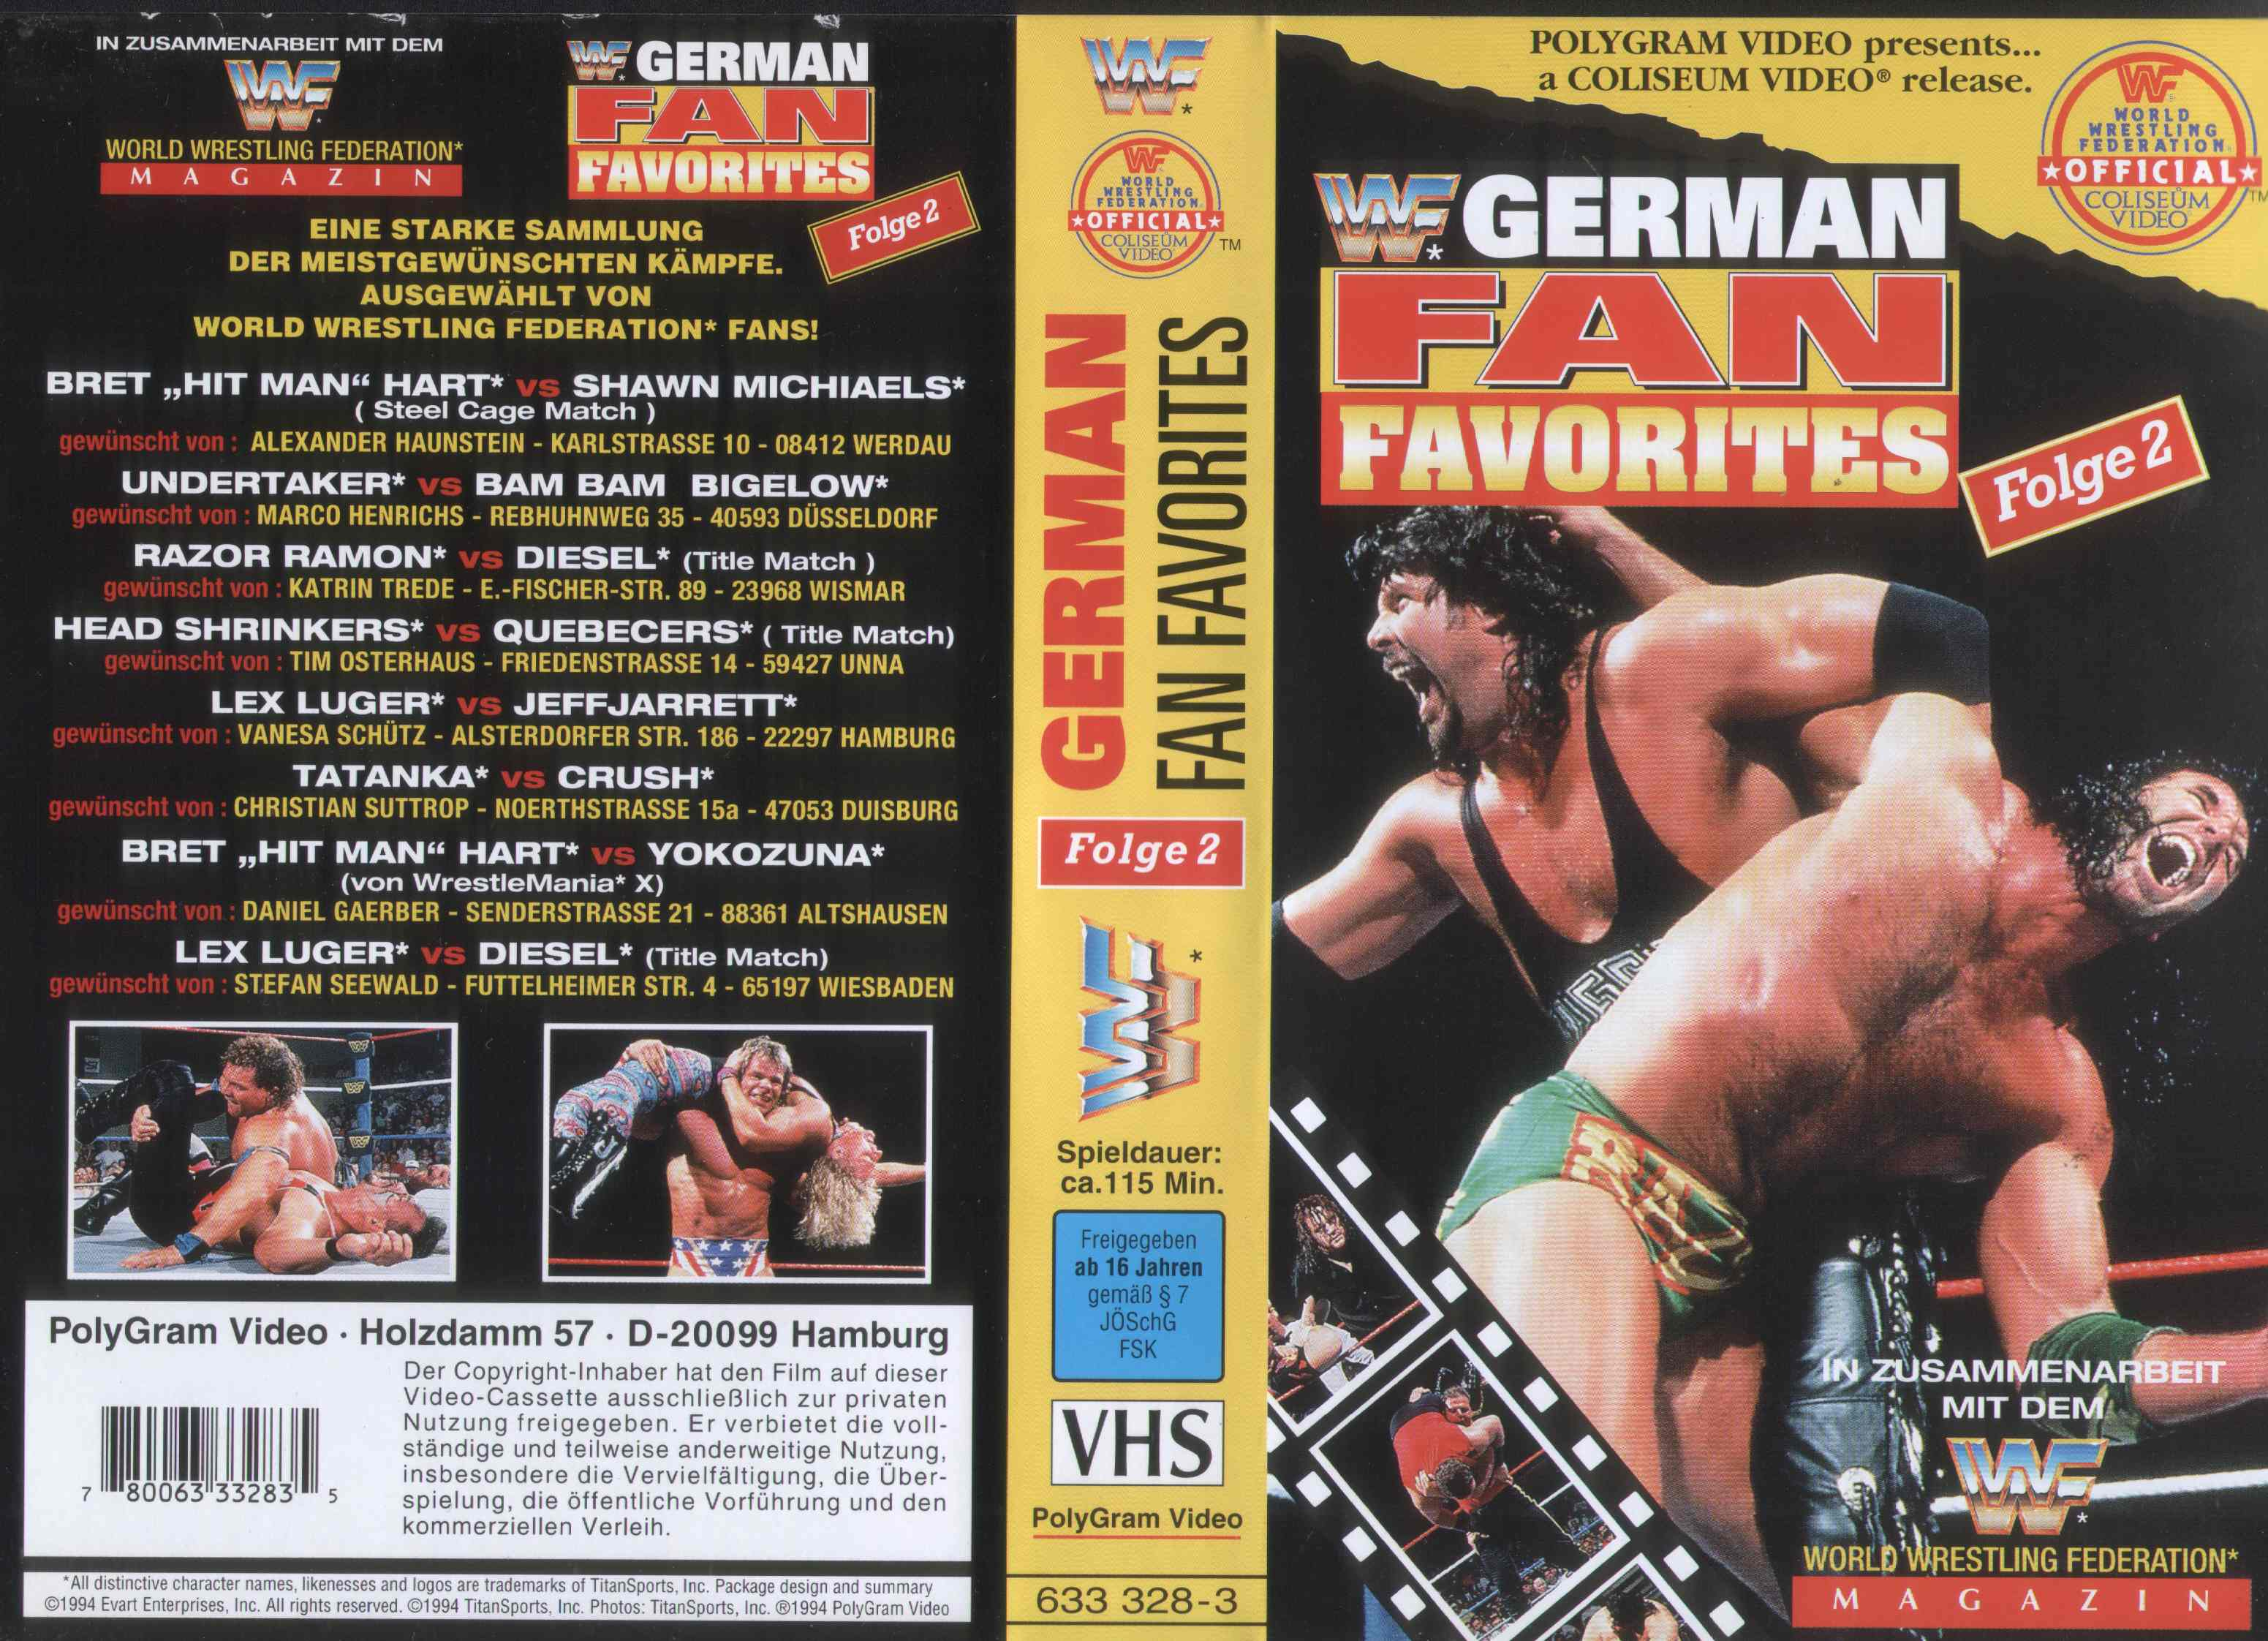 WWF_German_Fan_Favorites_2_-_Cover